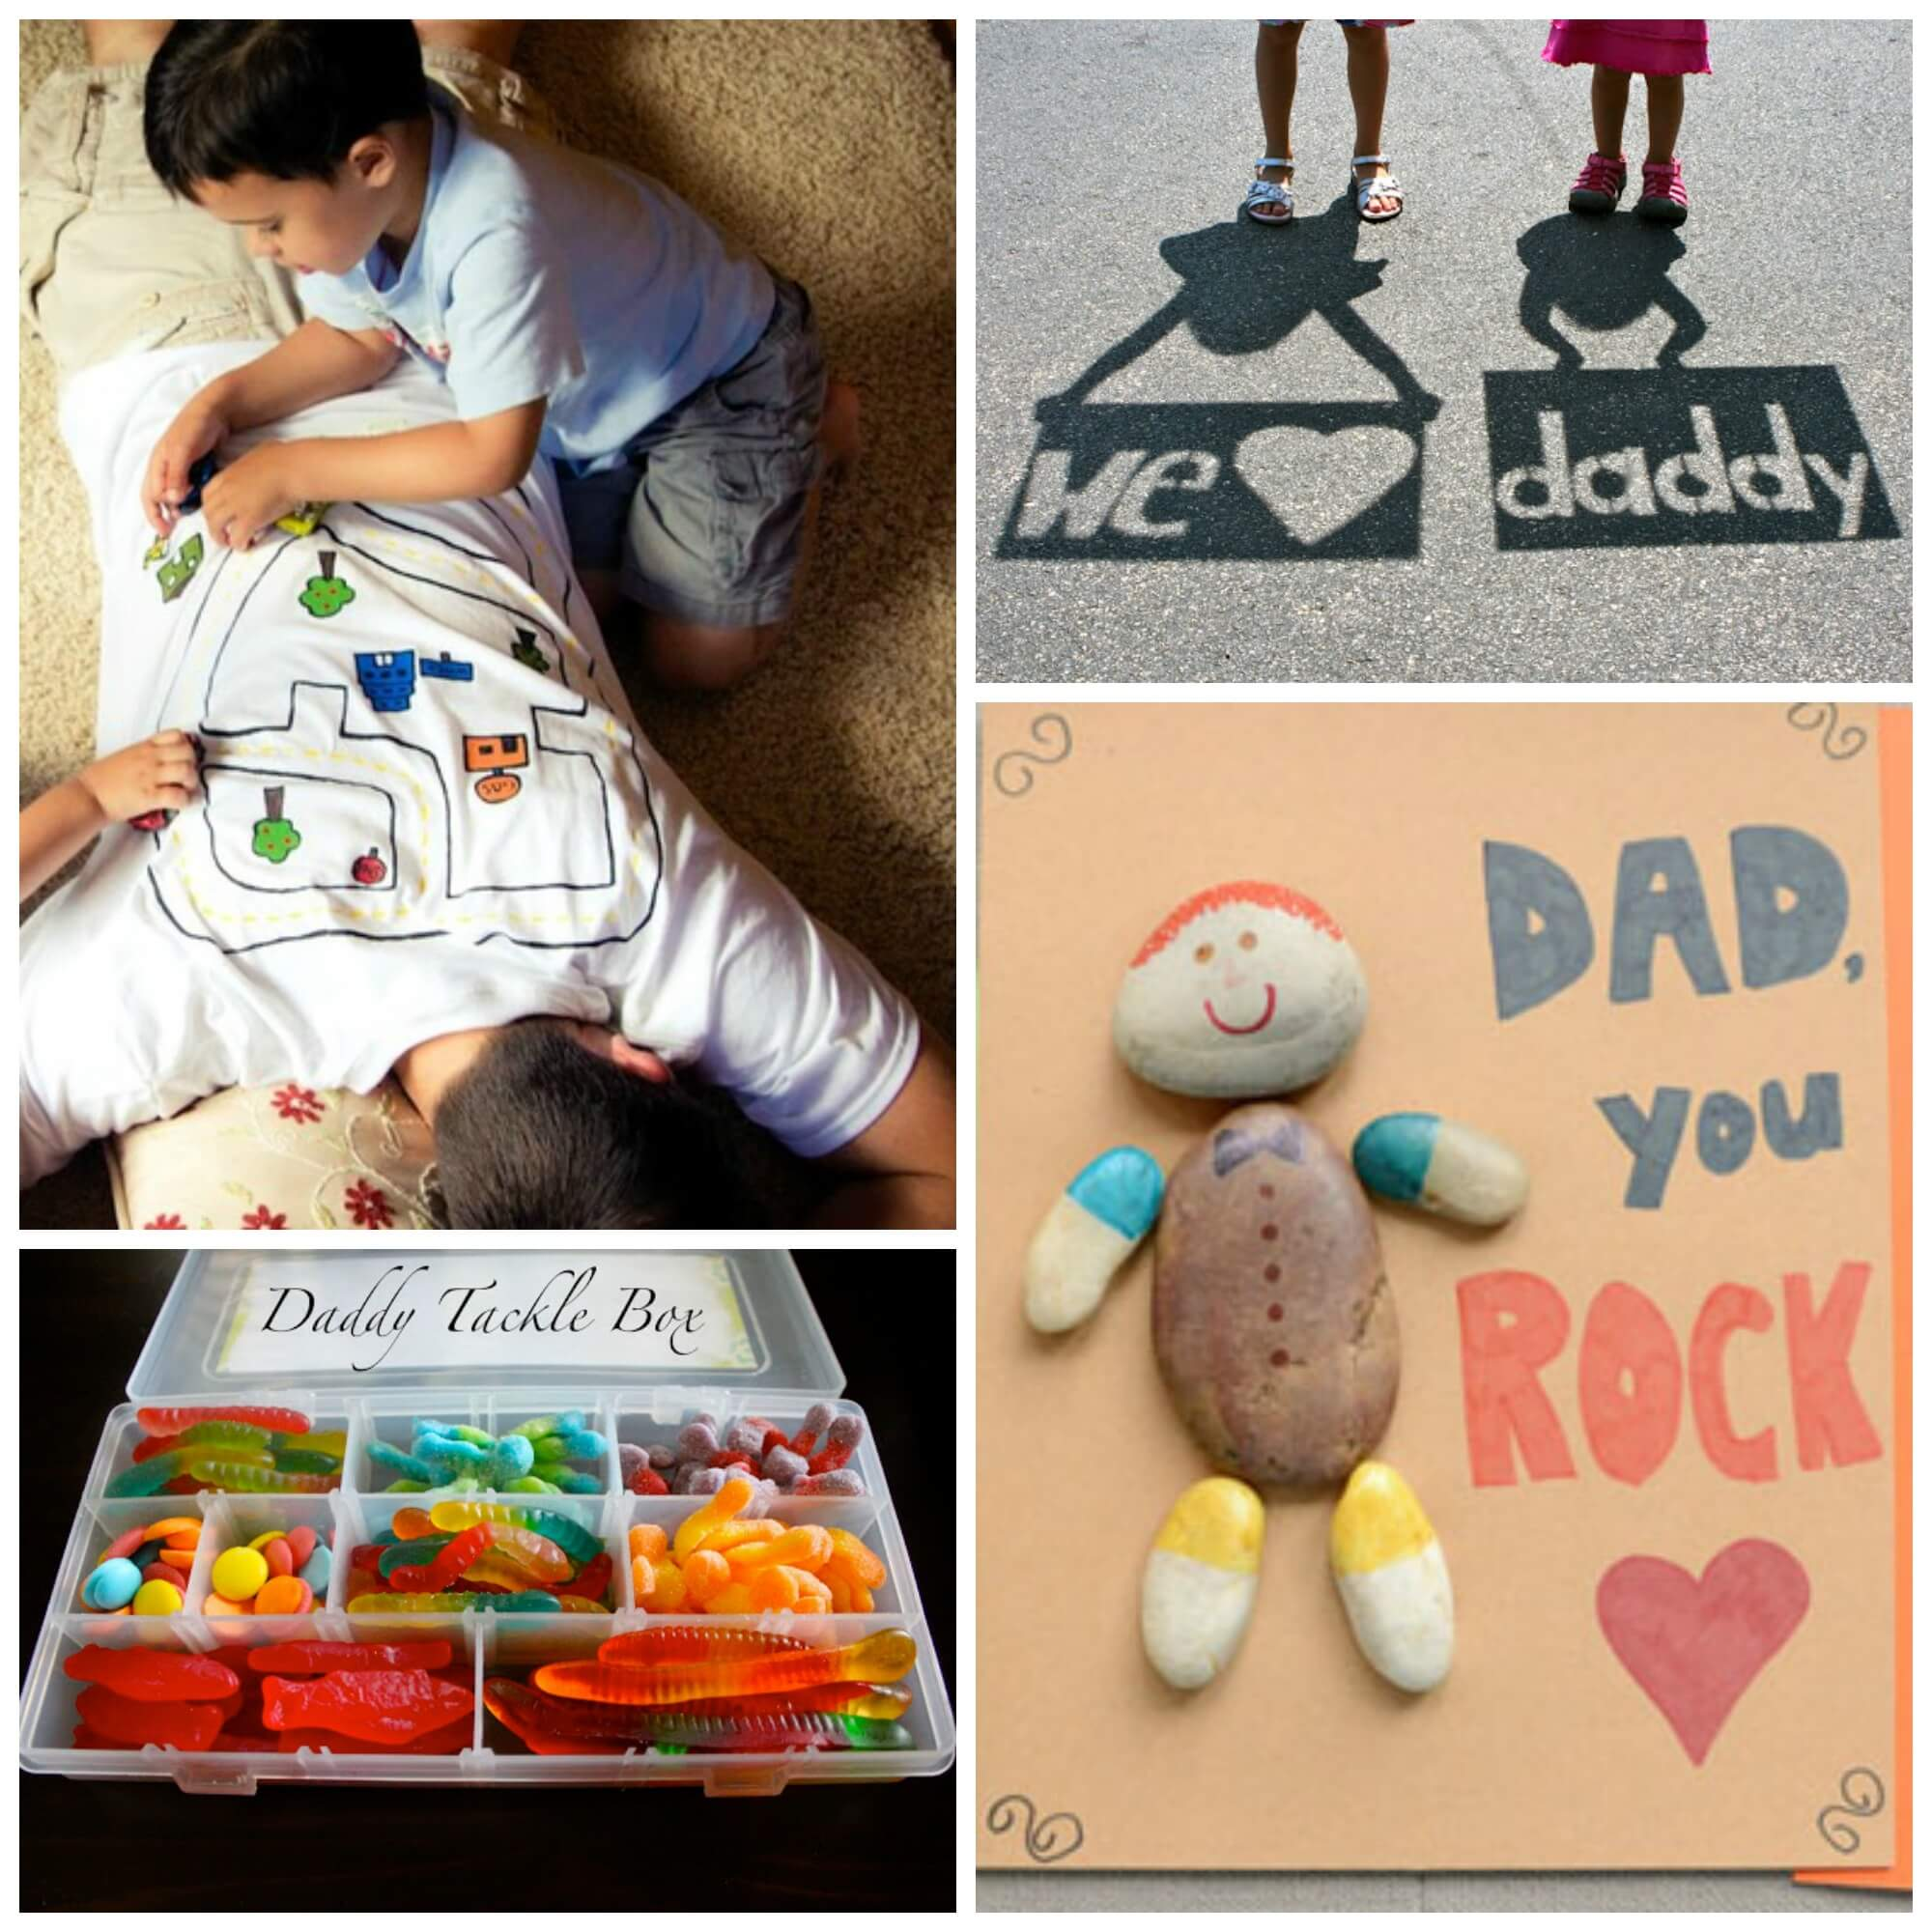 father's day gifts kids can make, homemade father's day gifts, father's day crafts